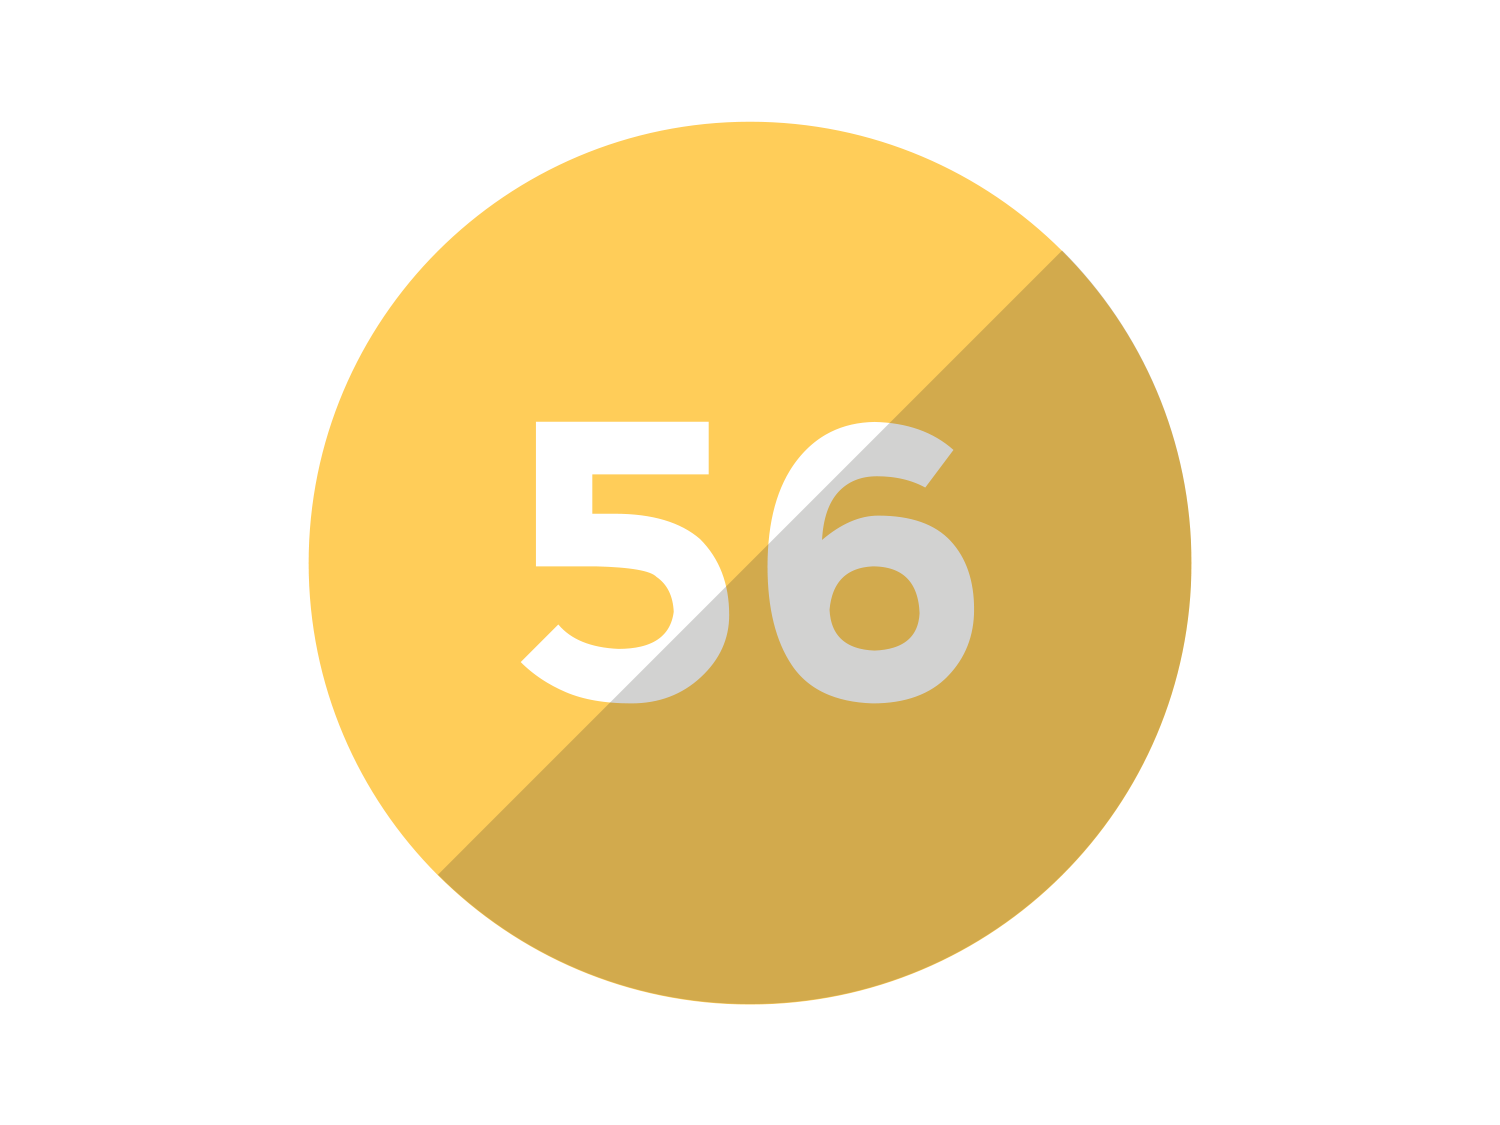 Number 56 is widely used by divination experts, occult investigators, and  various forms of metaphysical practitioners.